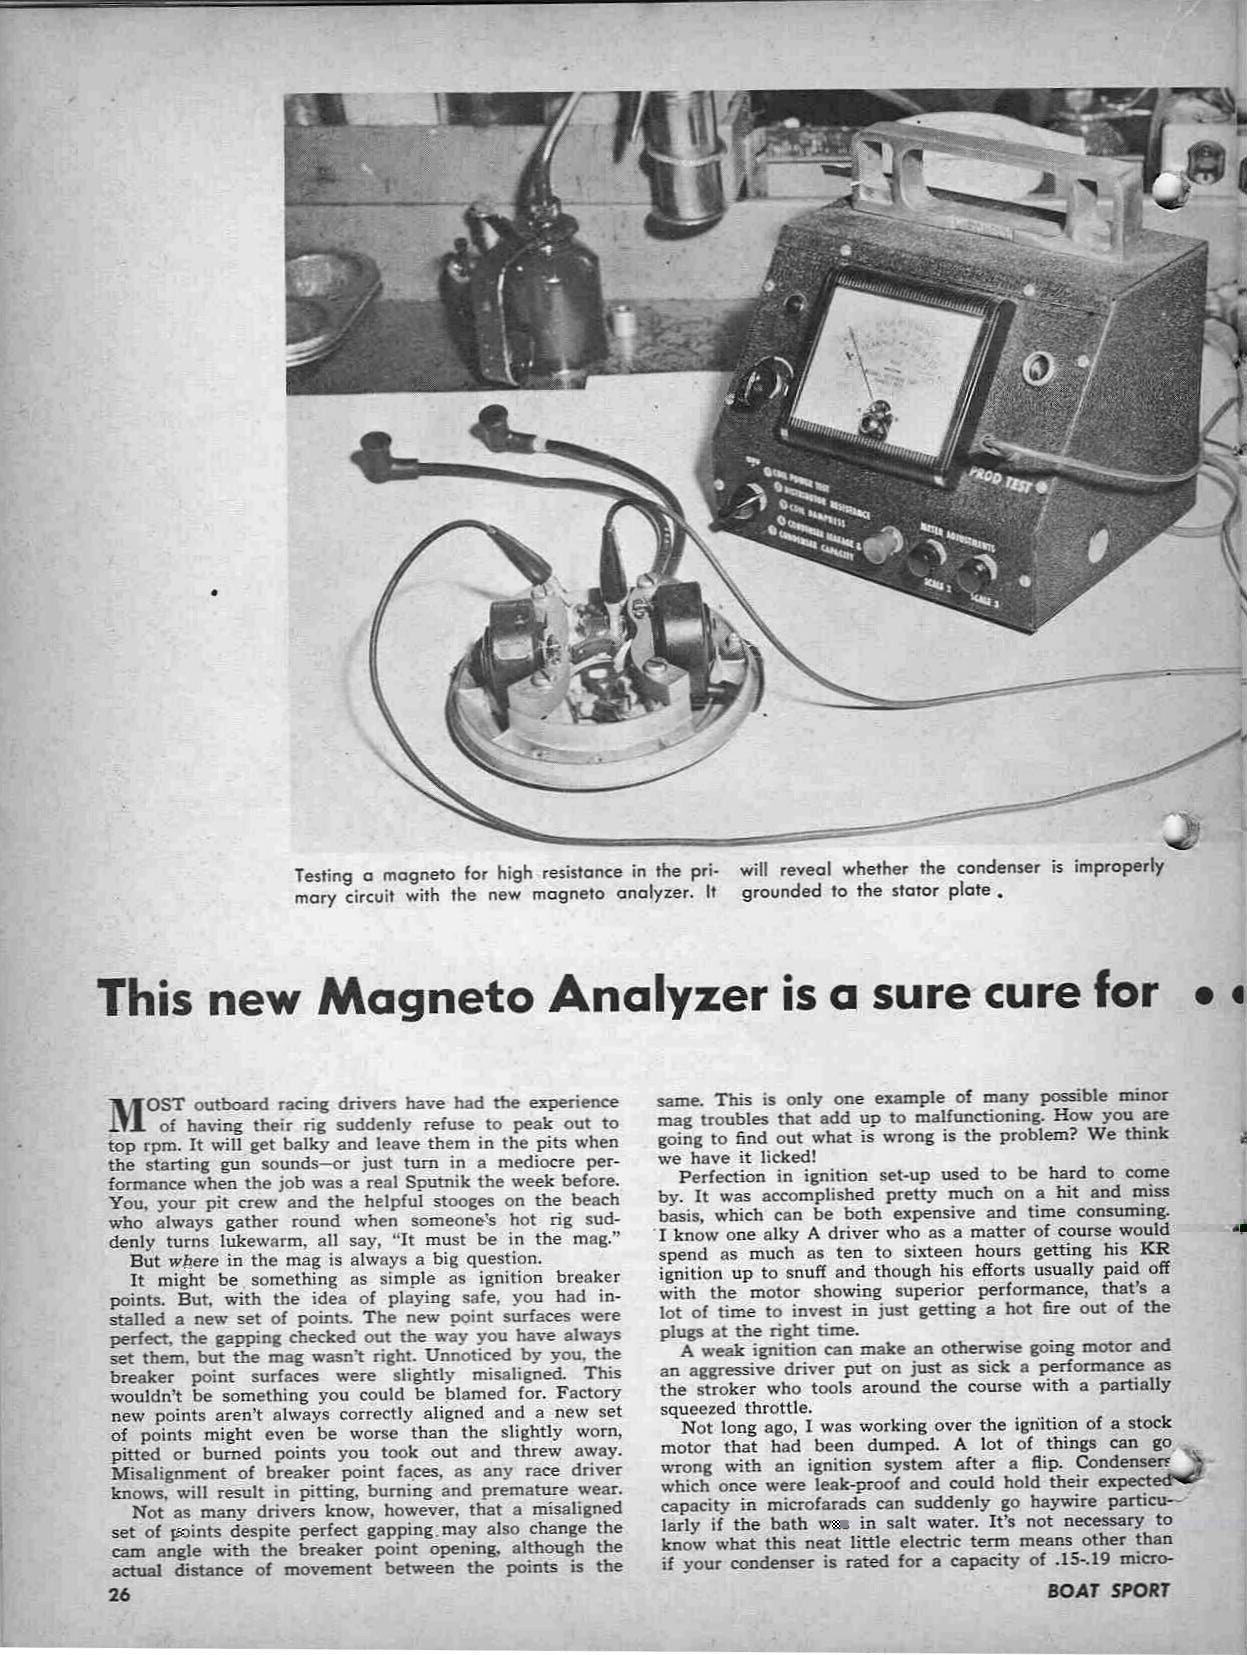 merc o tronic model 98  98a magneto testers from years ago